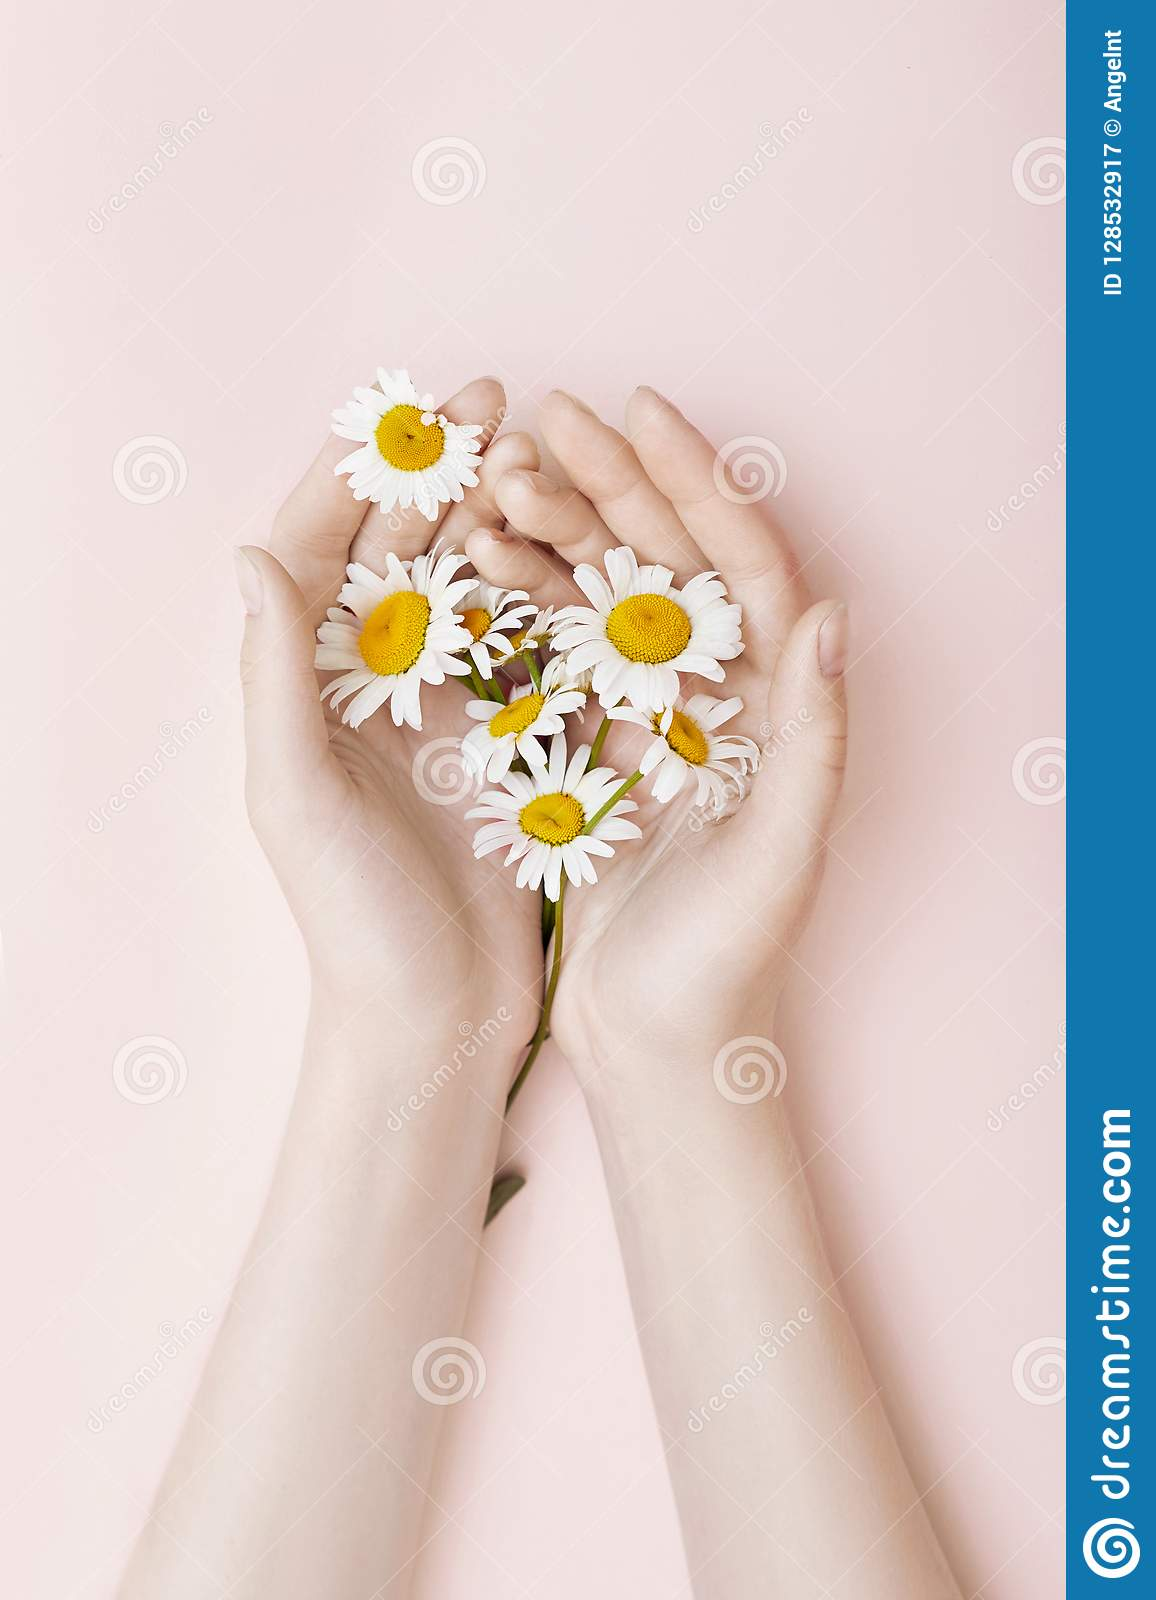 Fashion hand art chamomile natural cosmetics women, white beautiful chamomile flowers hand with bright contrast makeup, hand care